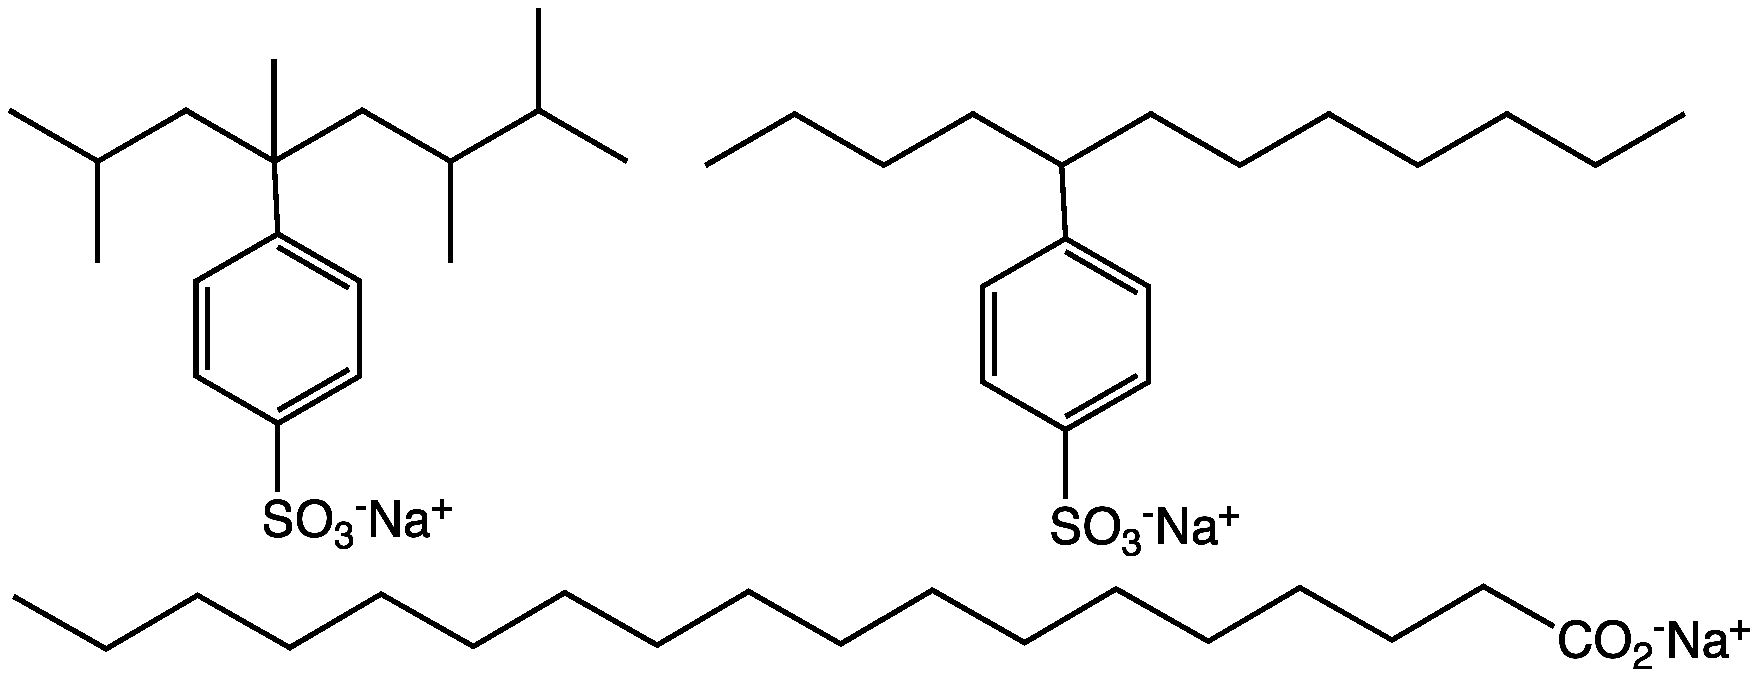 Soaps and DetergentsBy: Nicole Renzi Chemistry 102